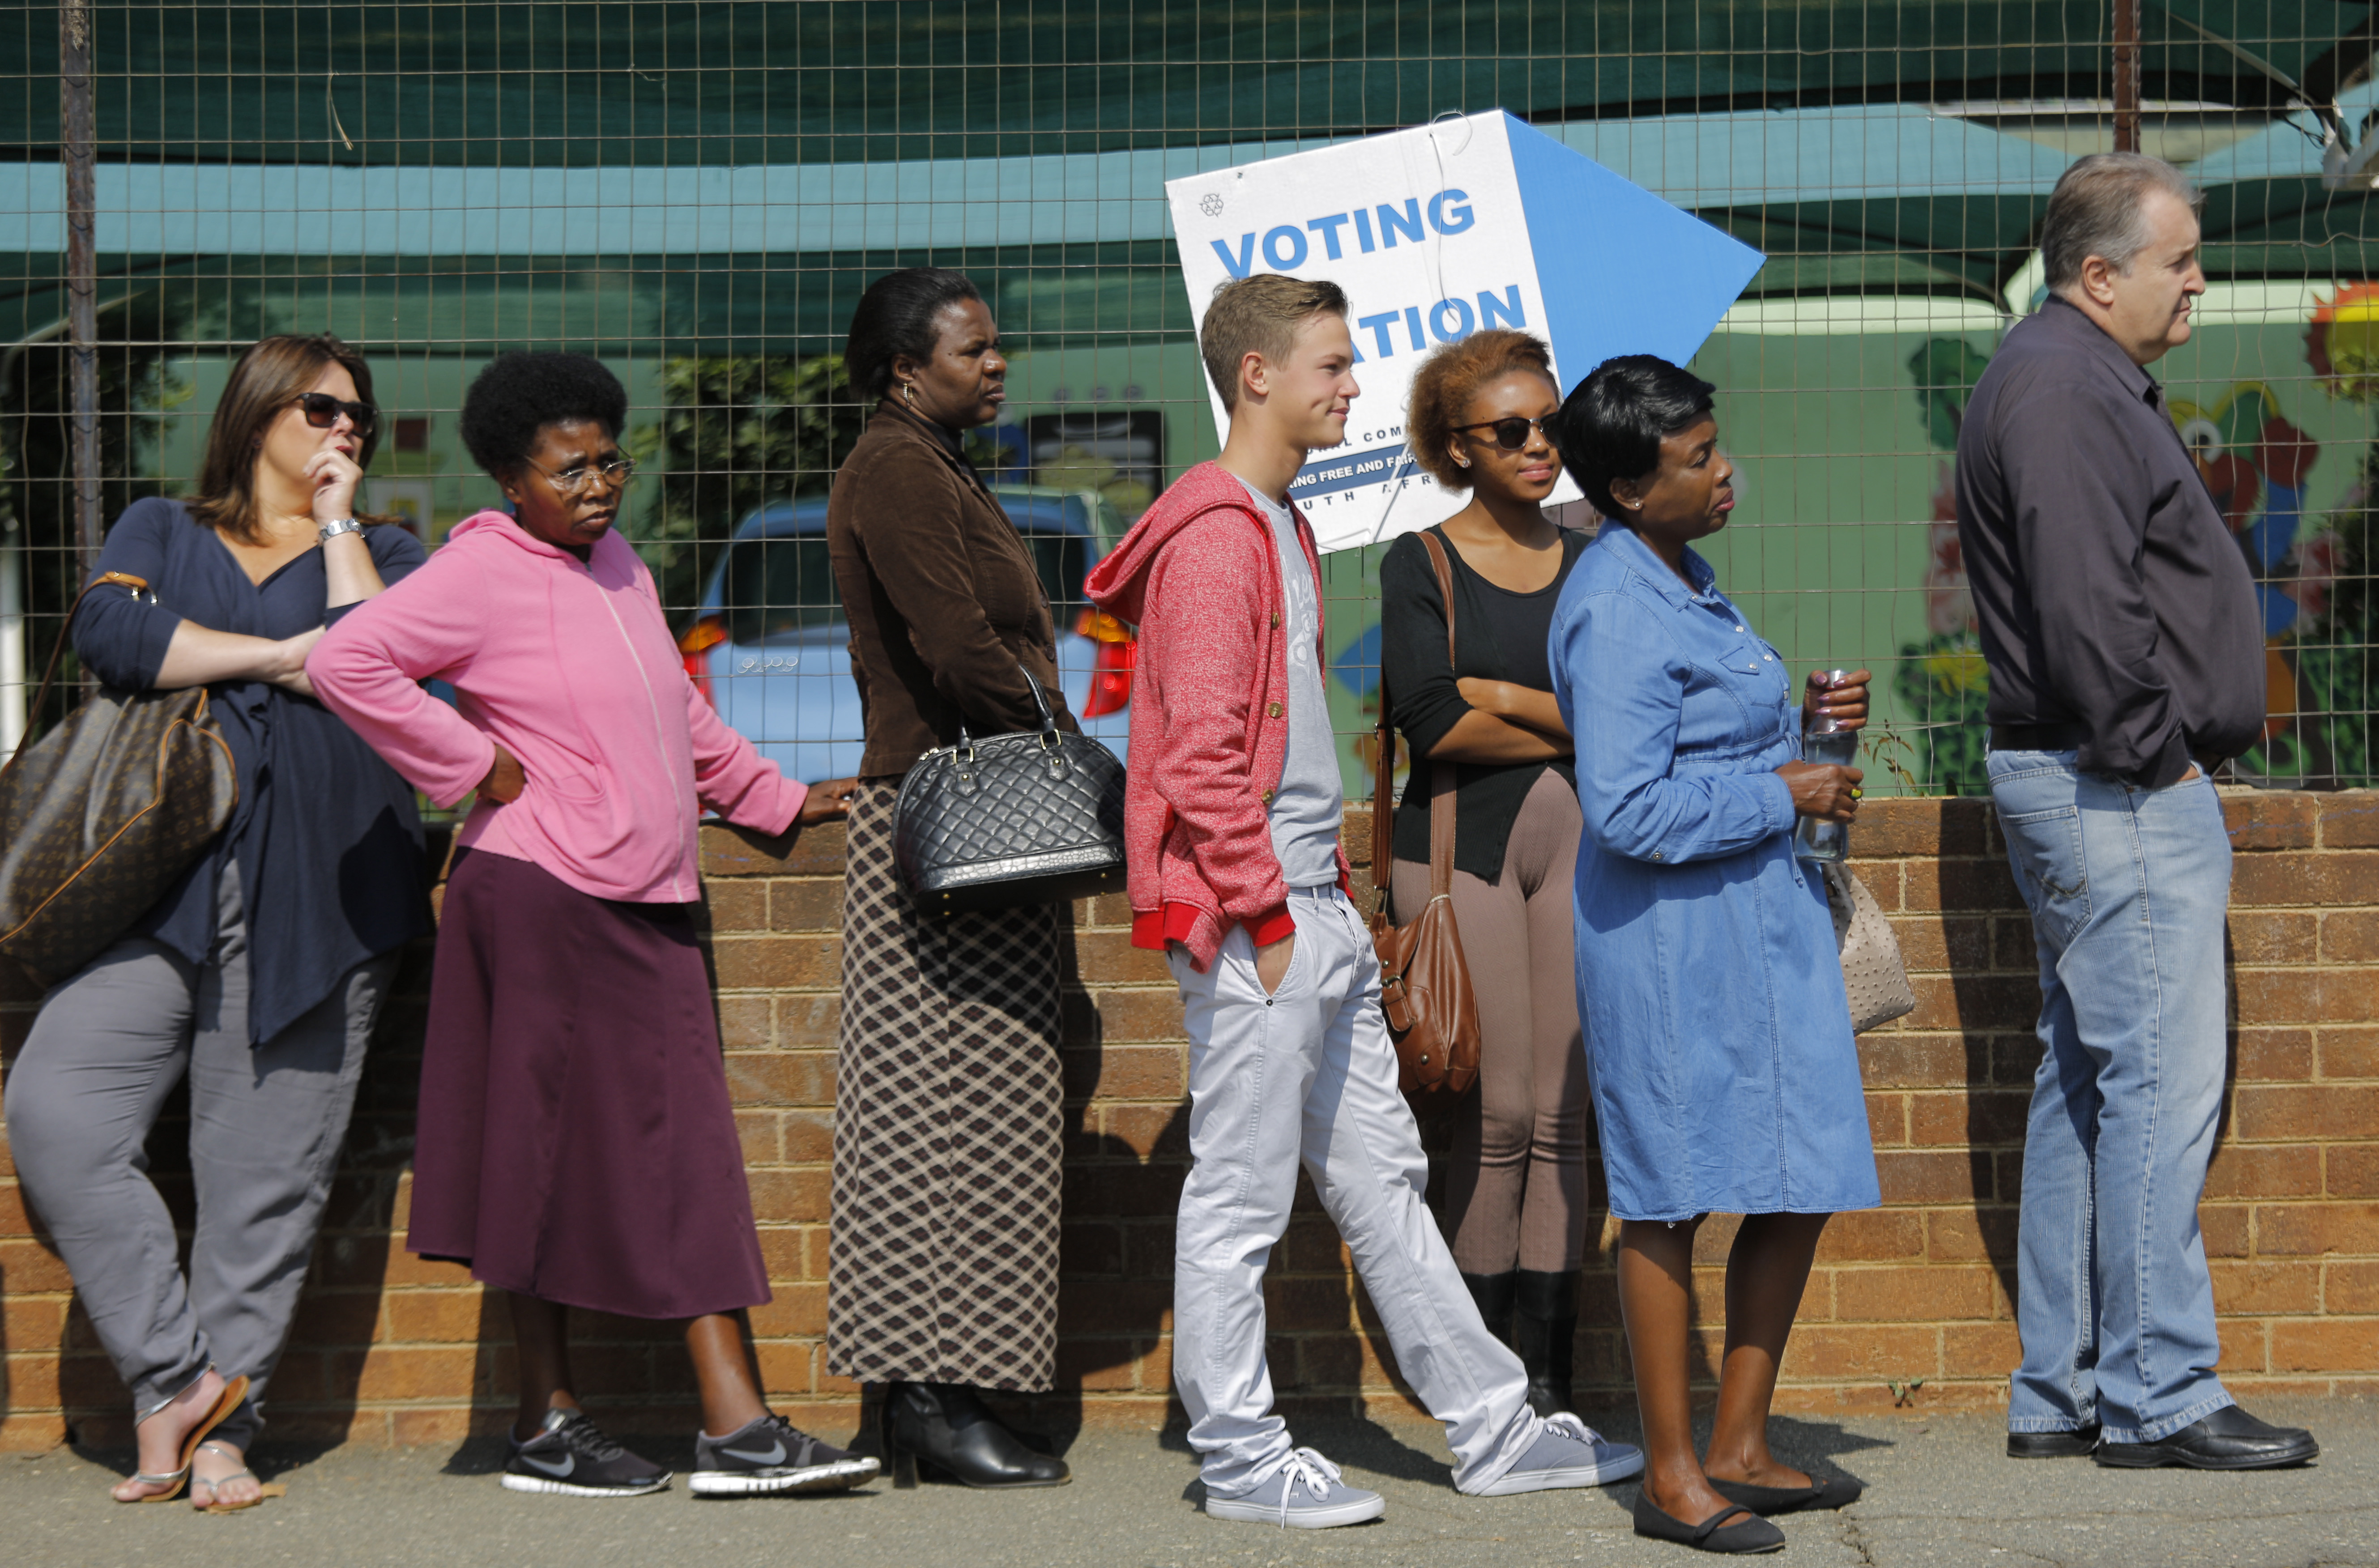 South Africans Go to the Polls in May: What You Need to Know